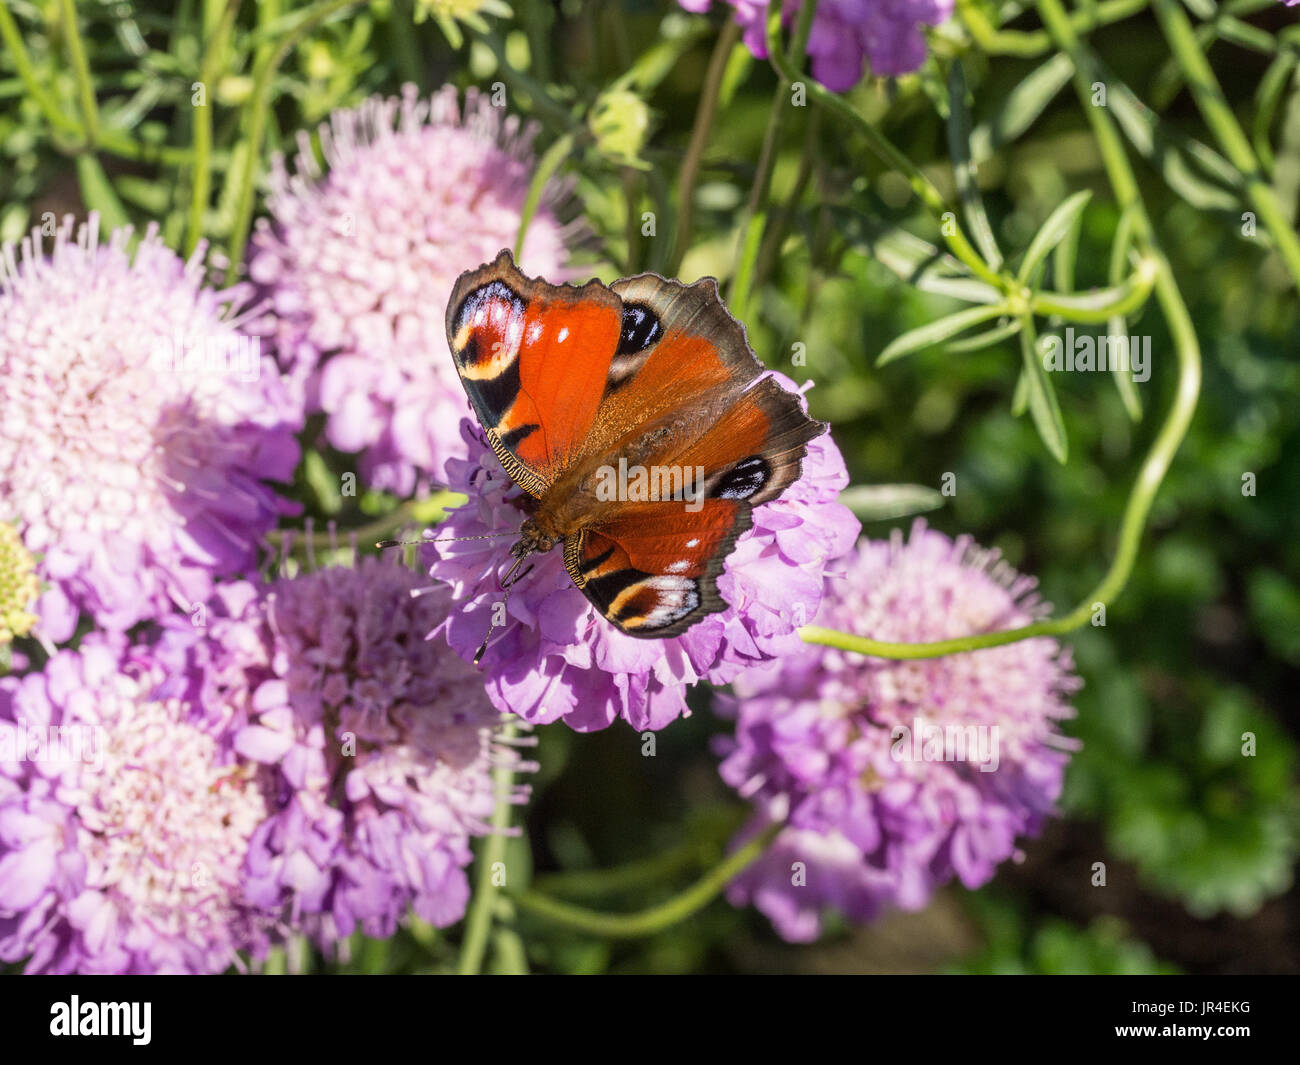 Peacock butterfly feeding on Scabious flowers - Stock Image